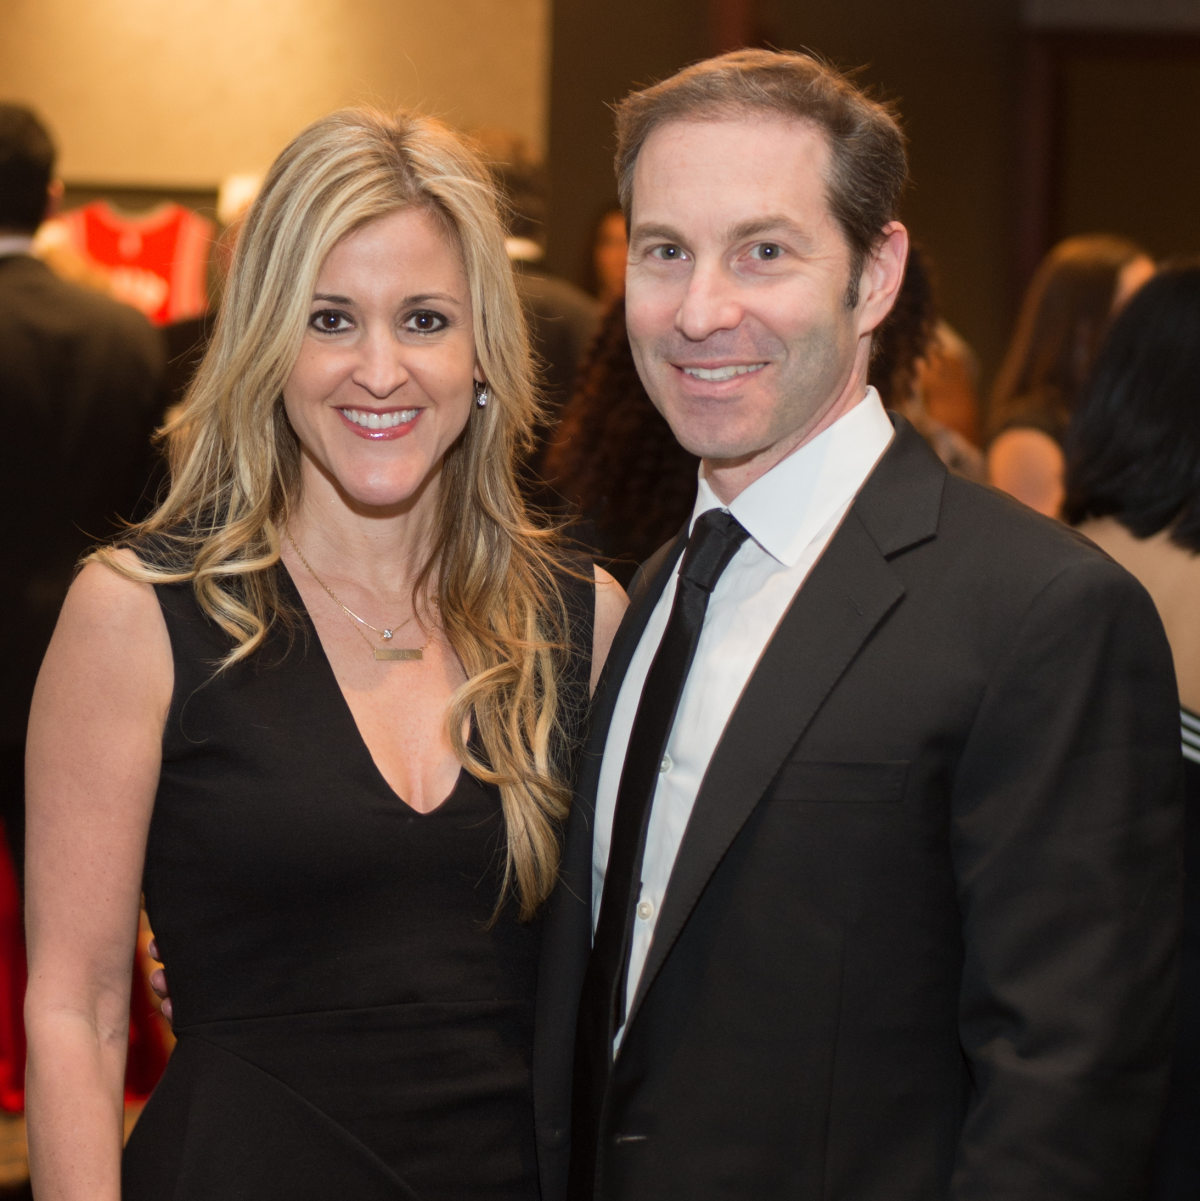 Houston, Pink Door Night of the Phoenix Gala, November 2015, Courtney Zubowski Haas, Dr. Eric Haas.